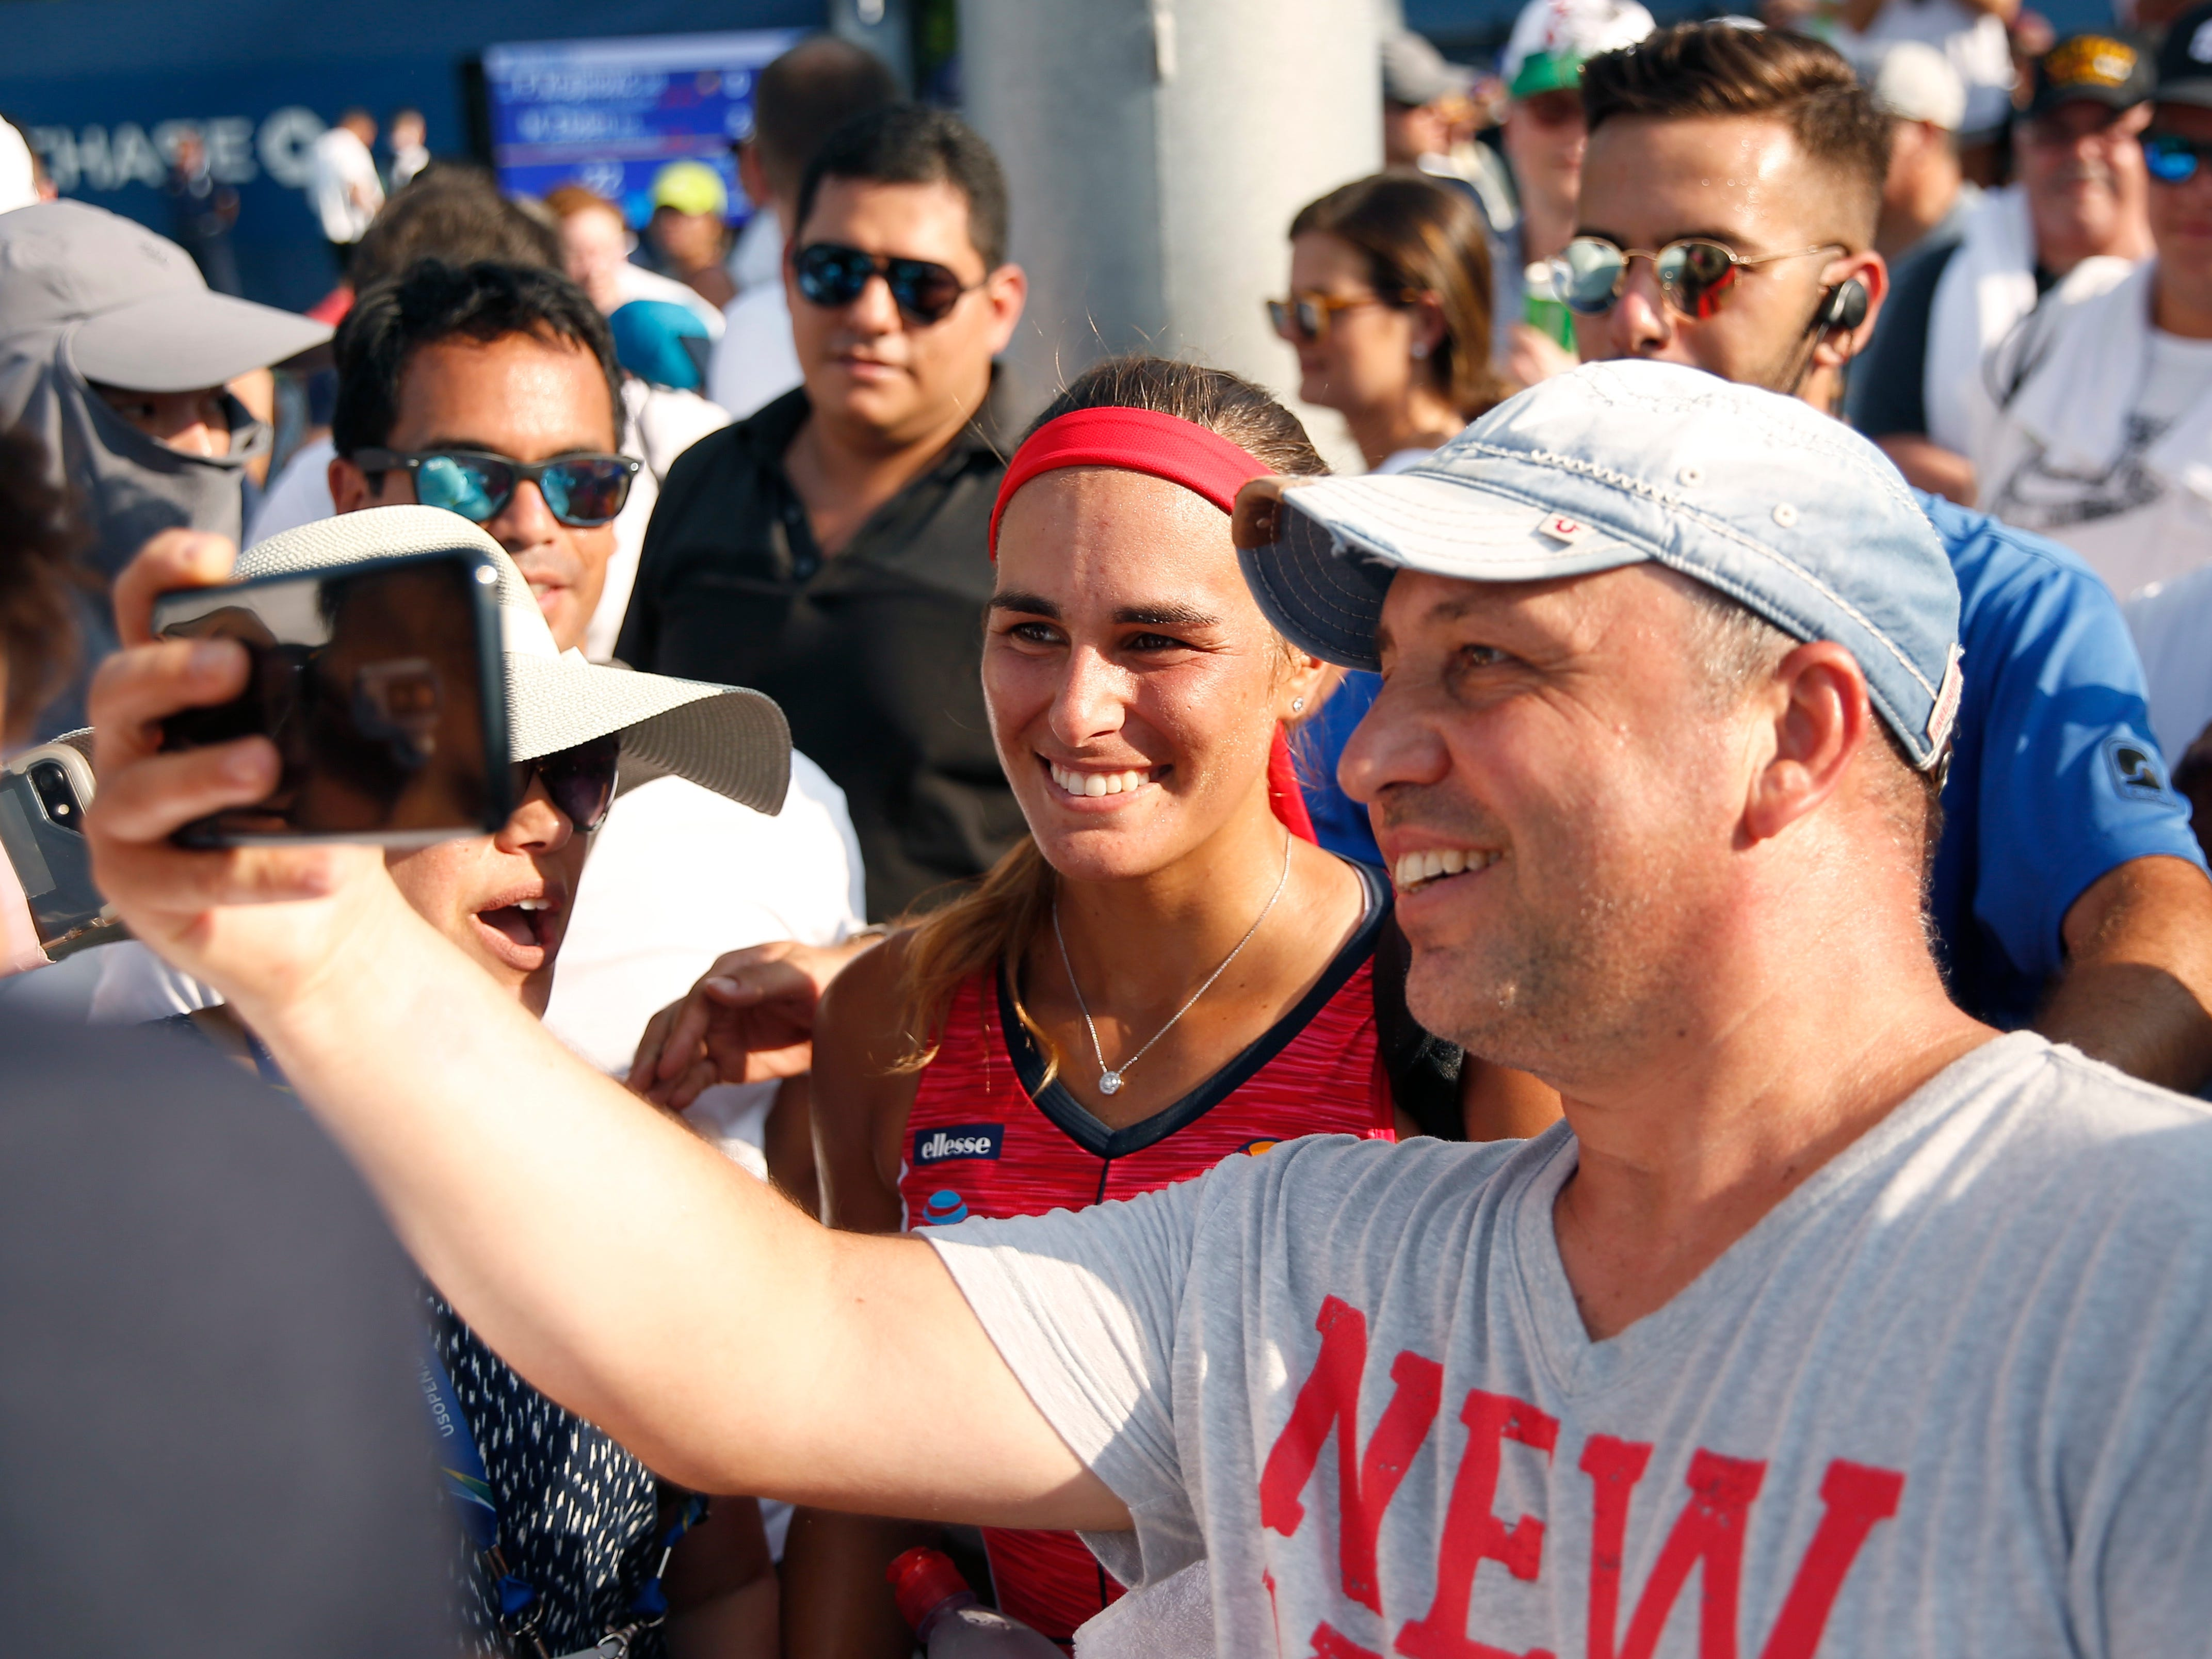 Monica Puig of Puerto Rico poses for a selfie with a fan after defeating Stefanie Voegele of Switzerland 6-0, 6-0.